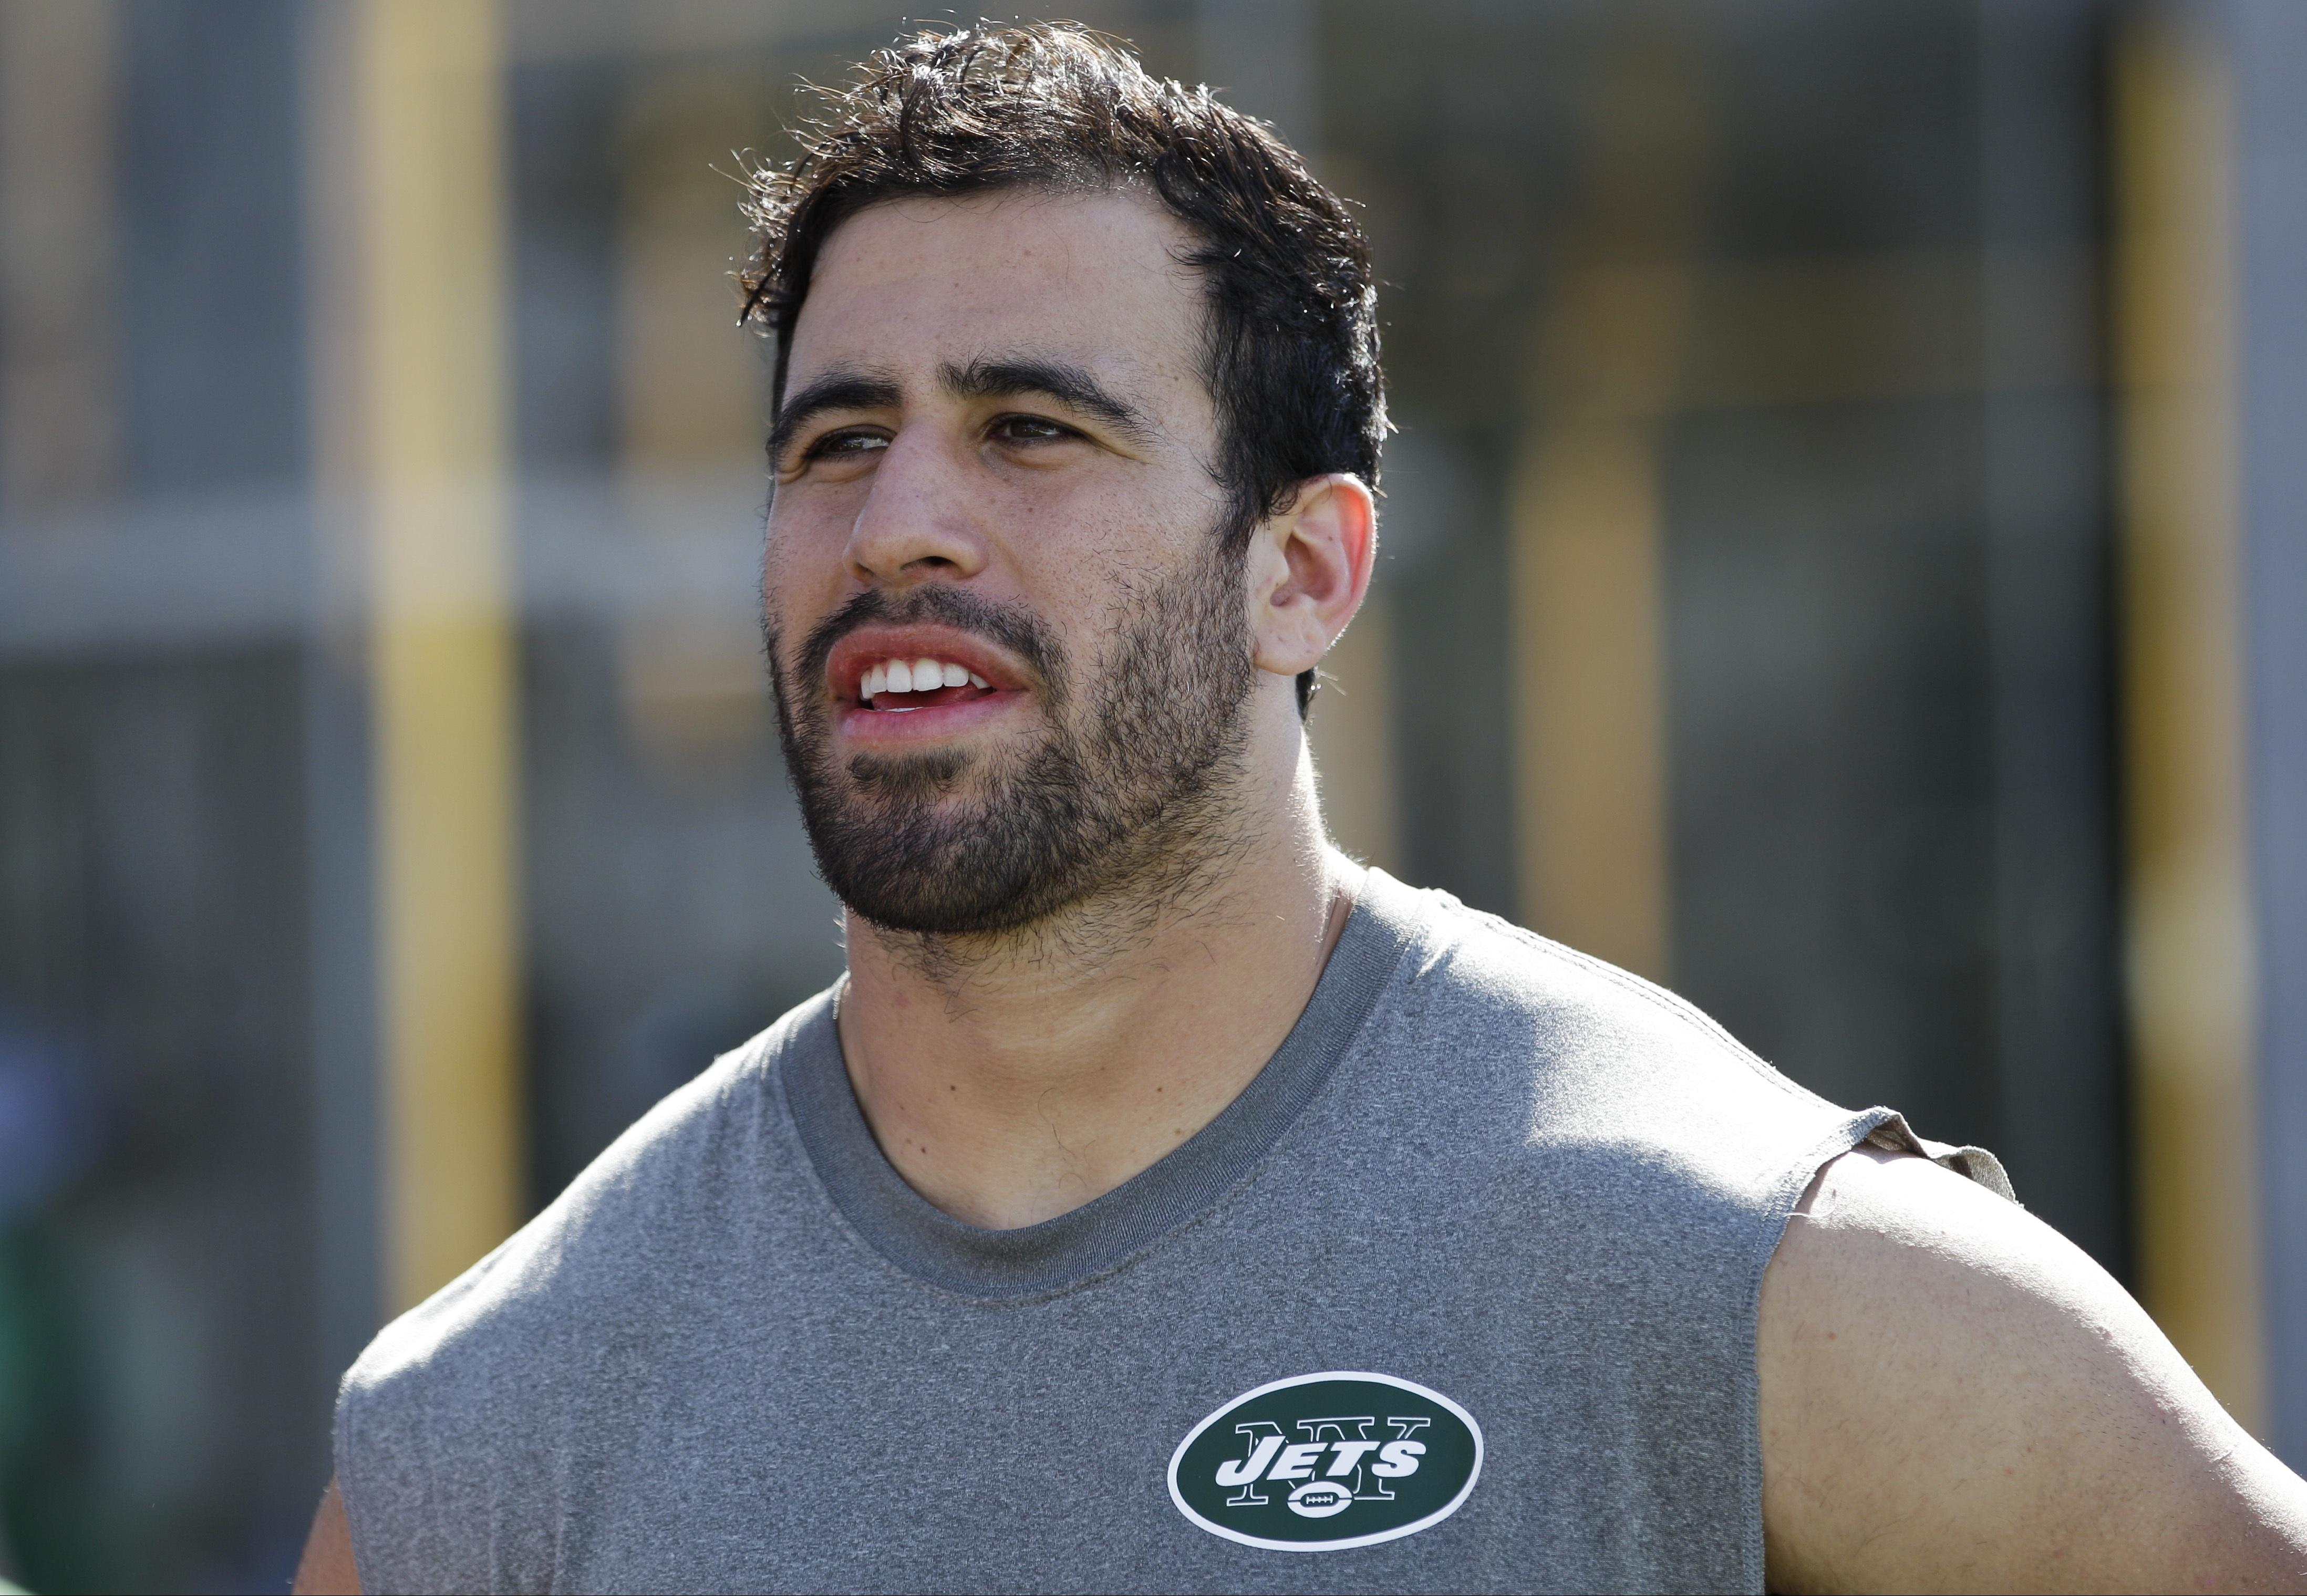 Jets' Amaro shaped by near-death experience in college